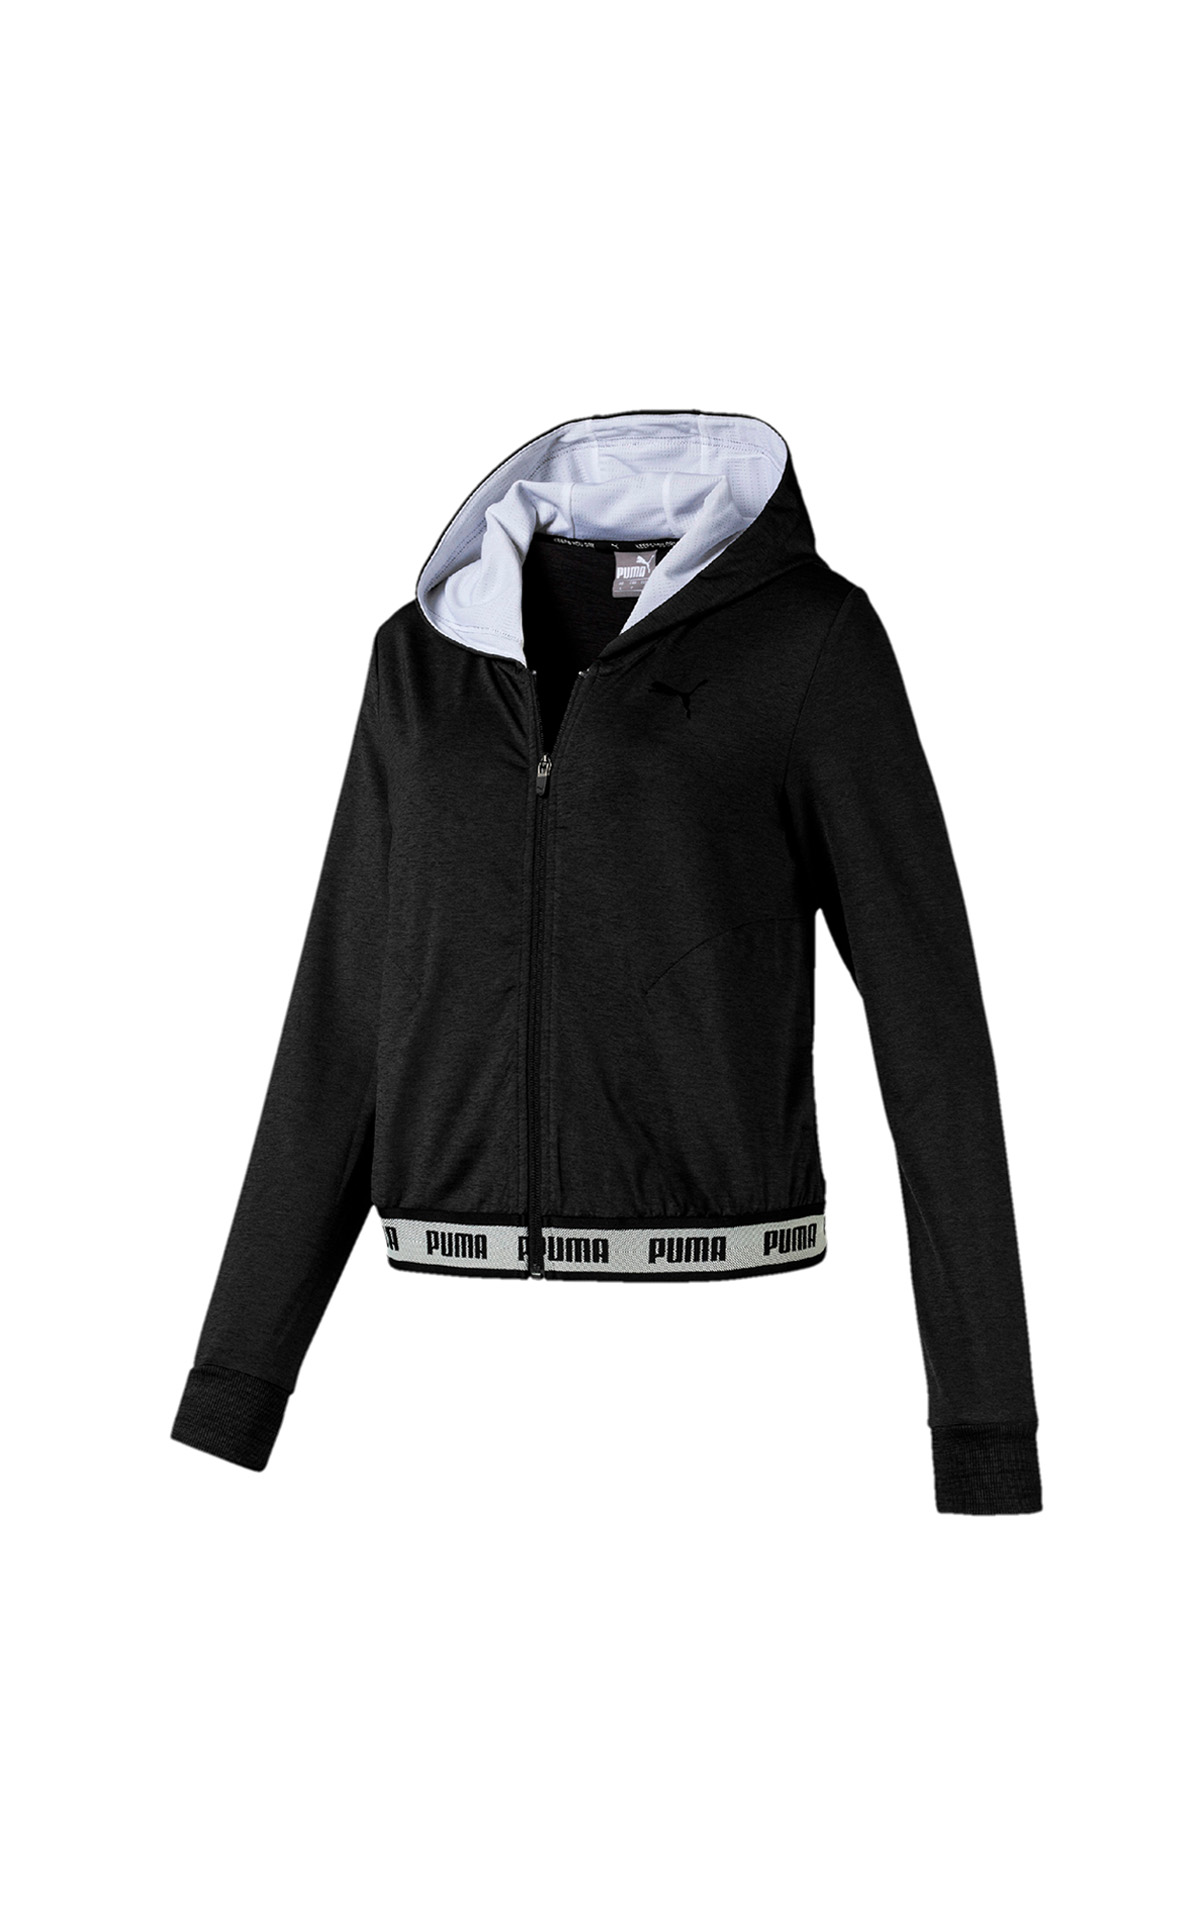 PUMA soft sports drapey zip hoody at The Bicester Village Shopping Collection